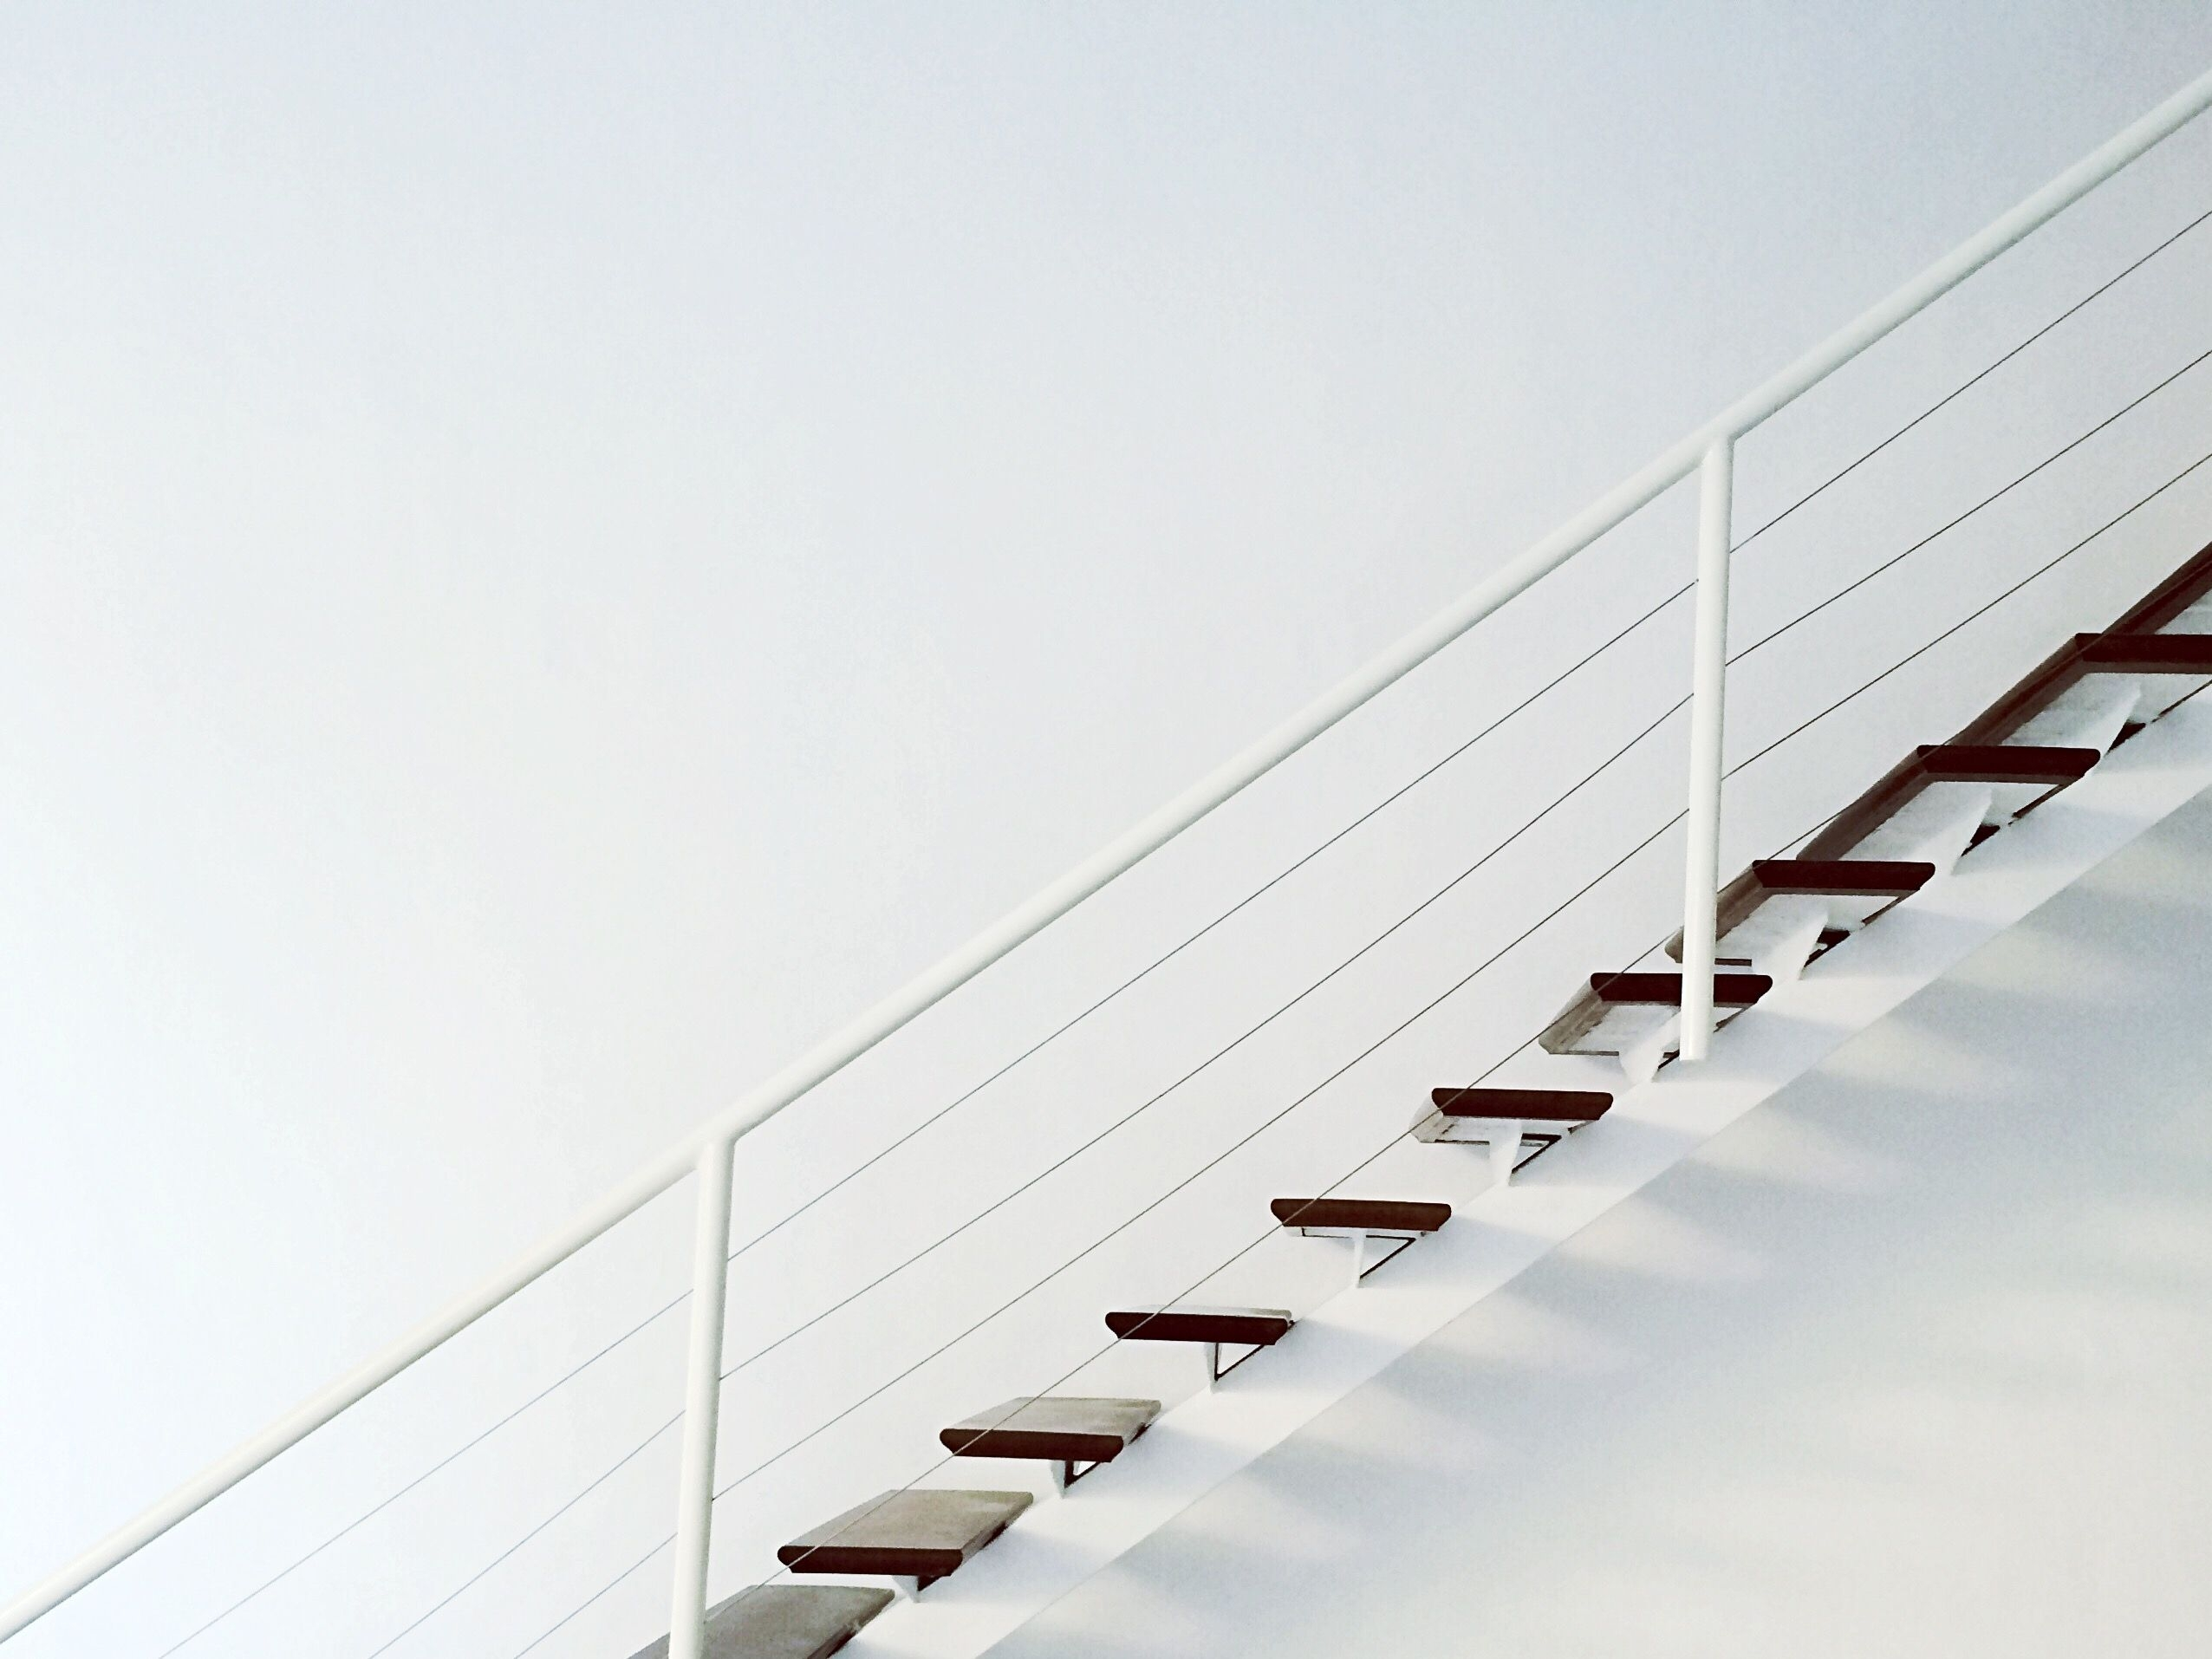 Stair Railing Kits For Interior Stairs And Balconies | Metal Handrails For Sale | Balcony Railing | Iron Balusters | Stainless Steel | Stair | Cast Iron